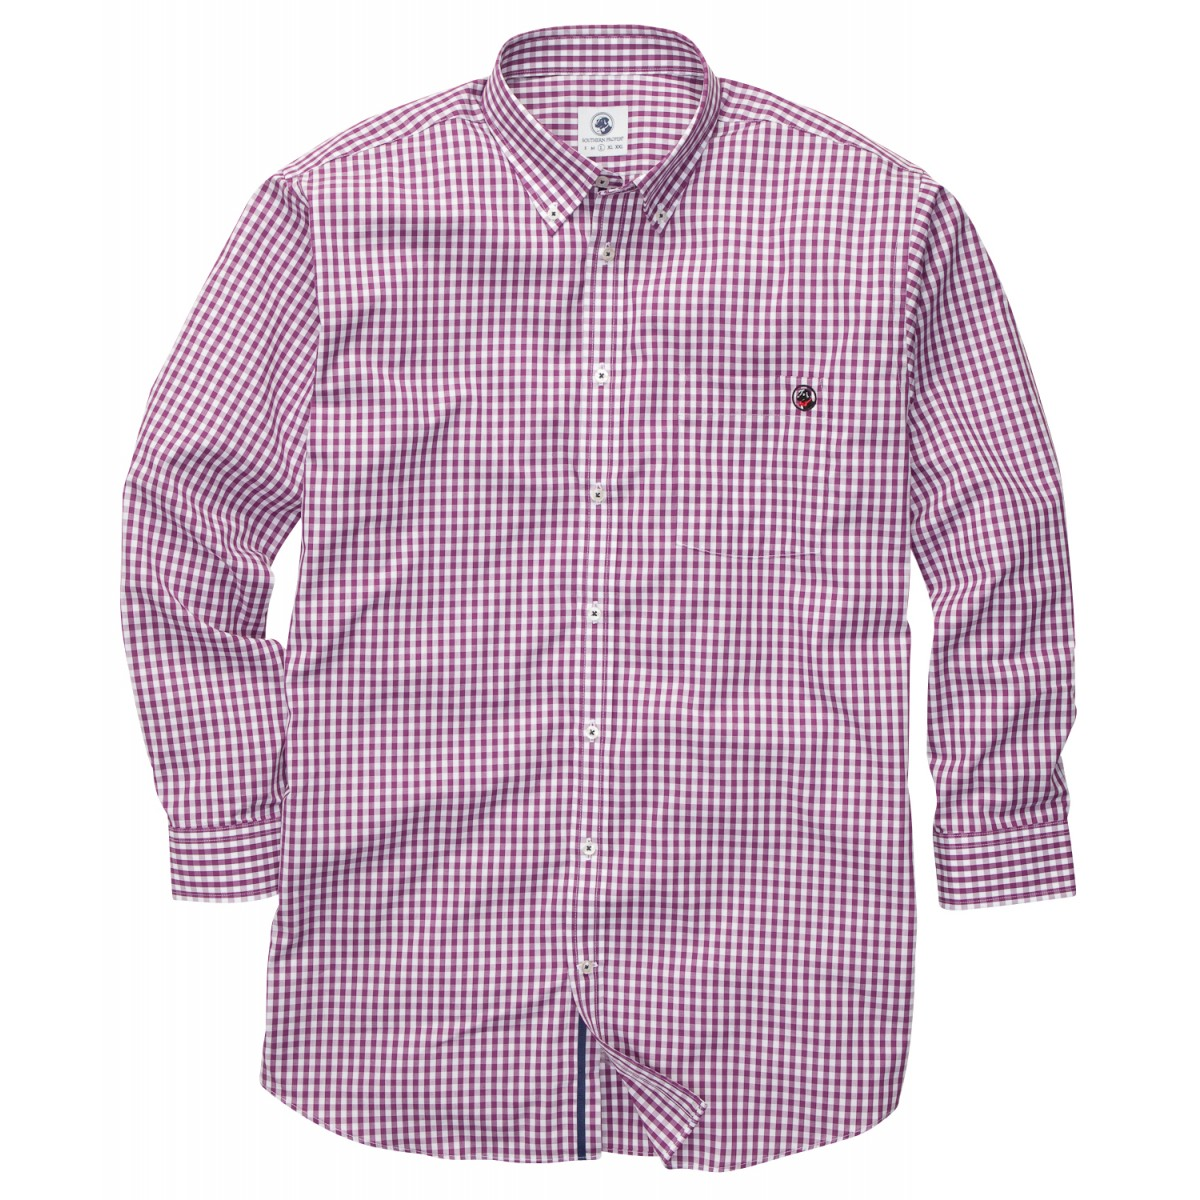 The Goal Line Shirt - Purple Gingham